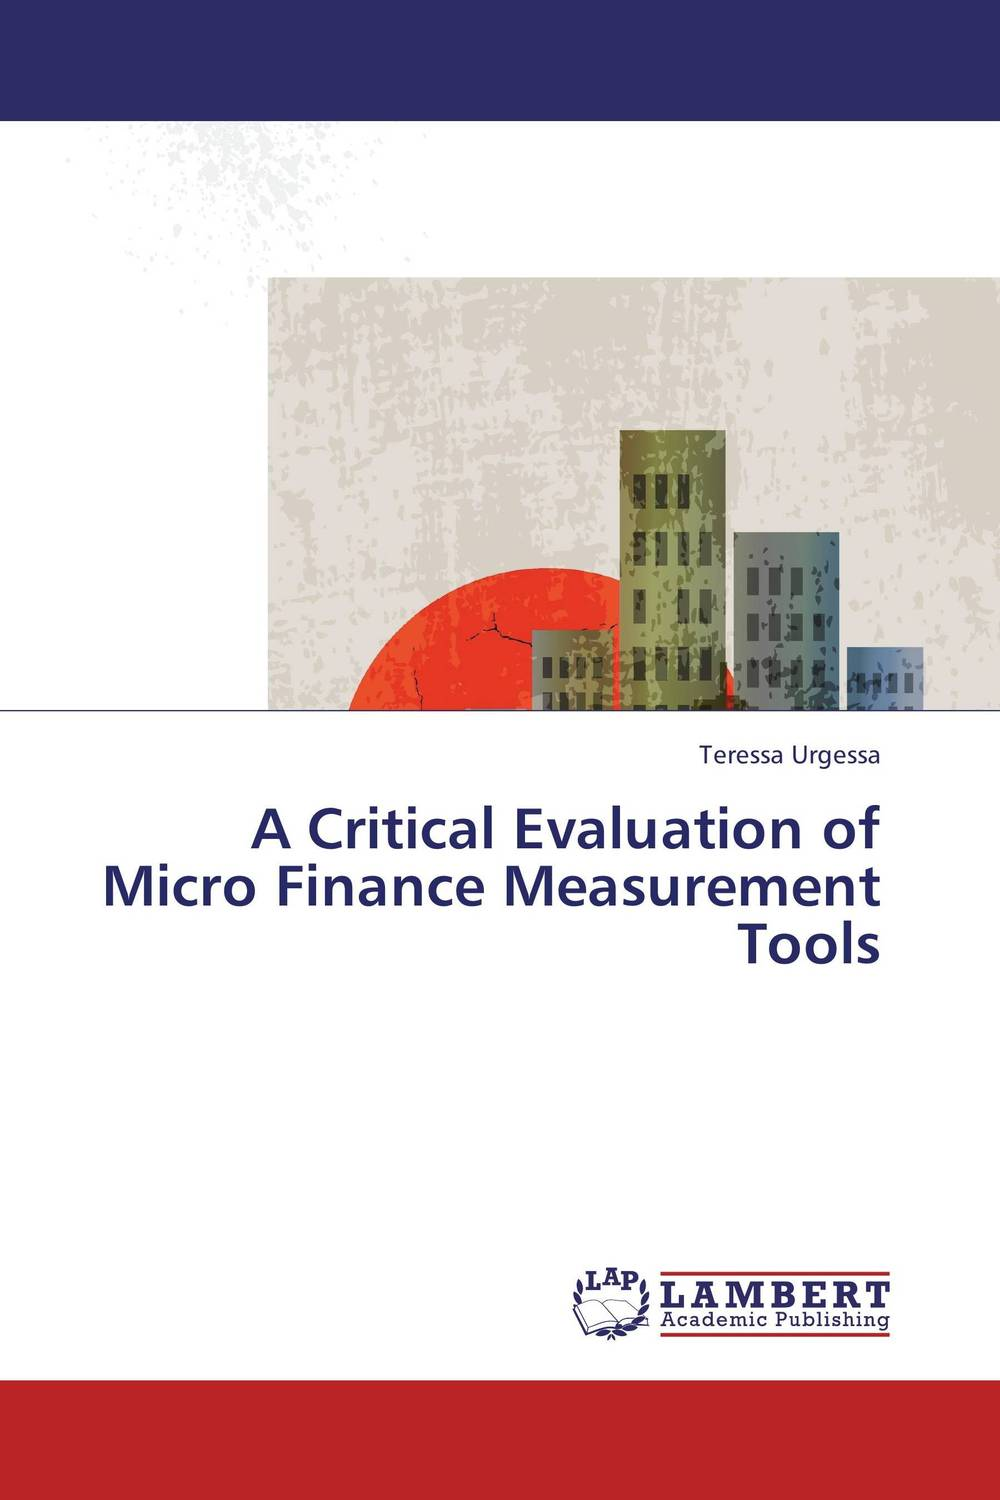 A Critical Evaluation of Micro Finance Measurement Tools evaluation of the impact of a mega sporting event